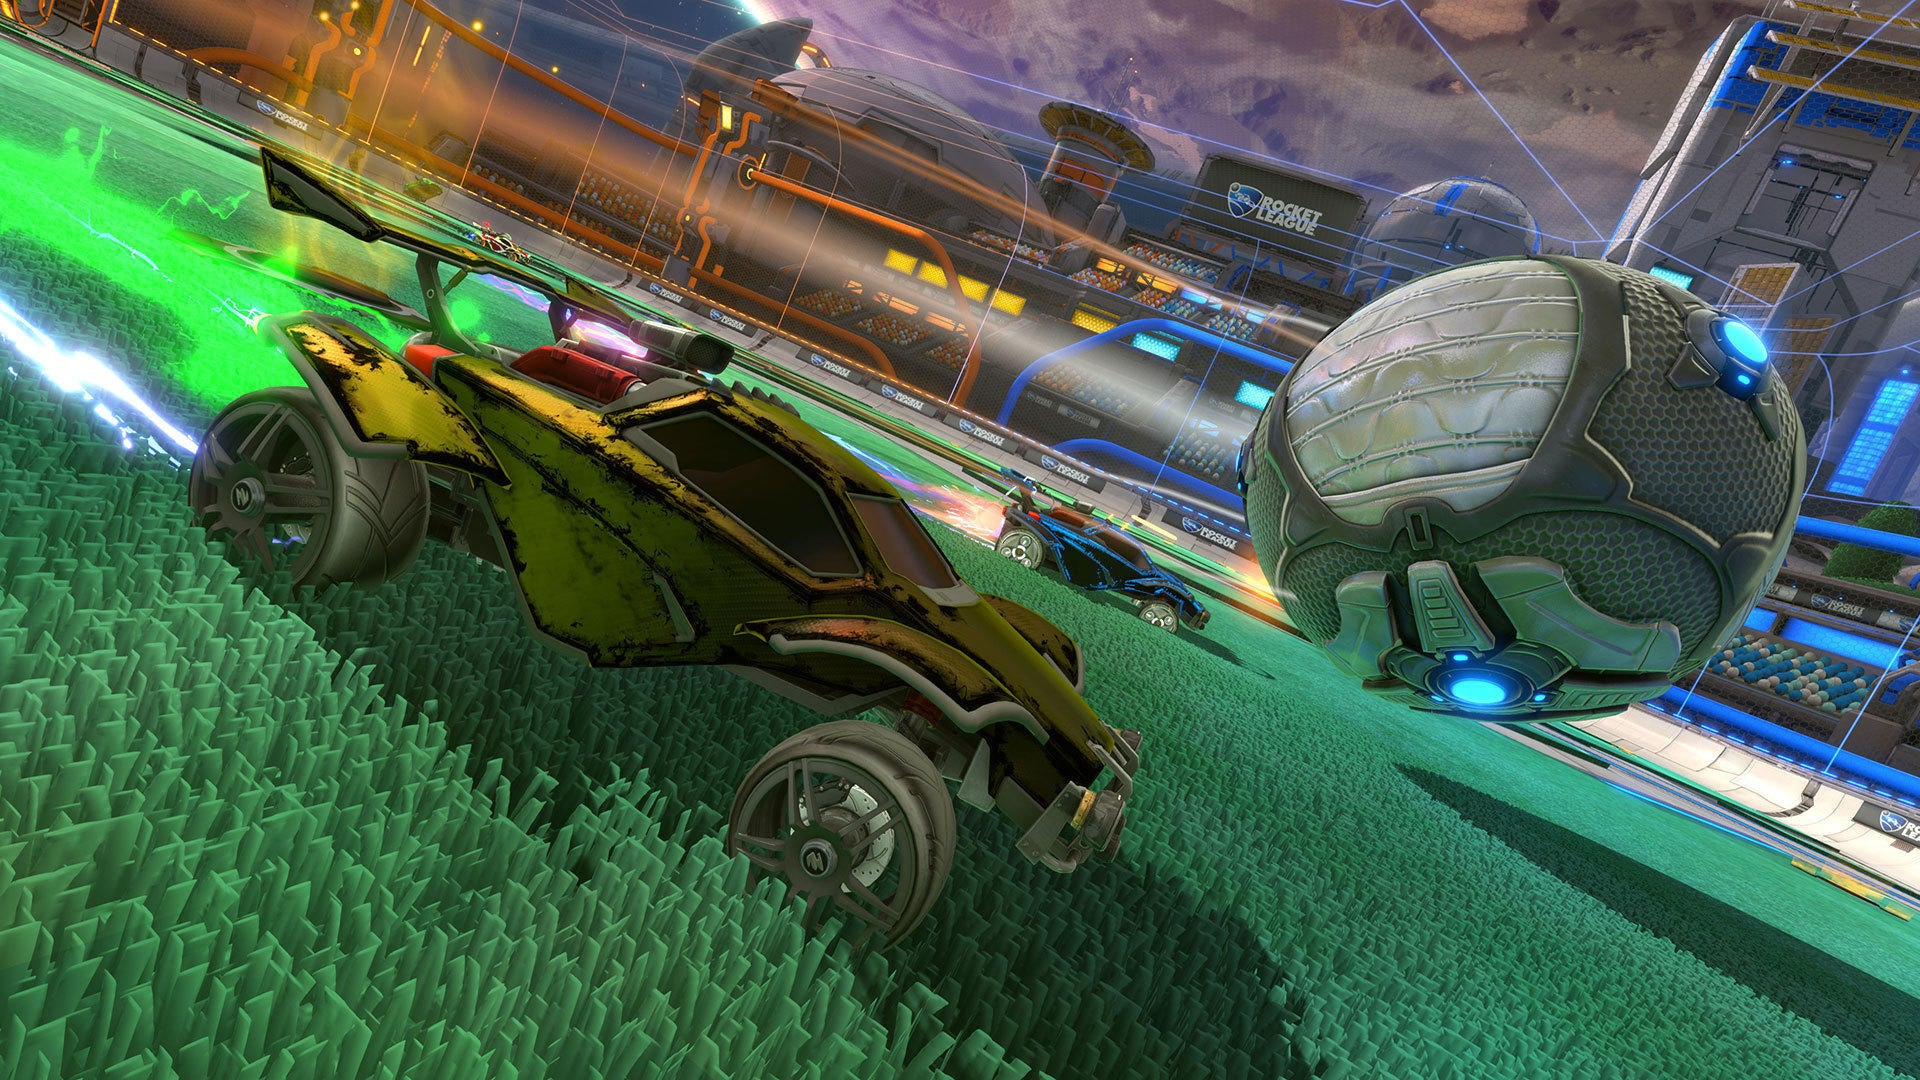 Rocket League at GDC 2018 Image